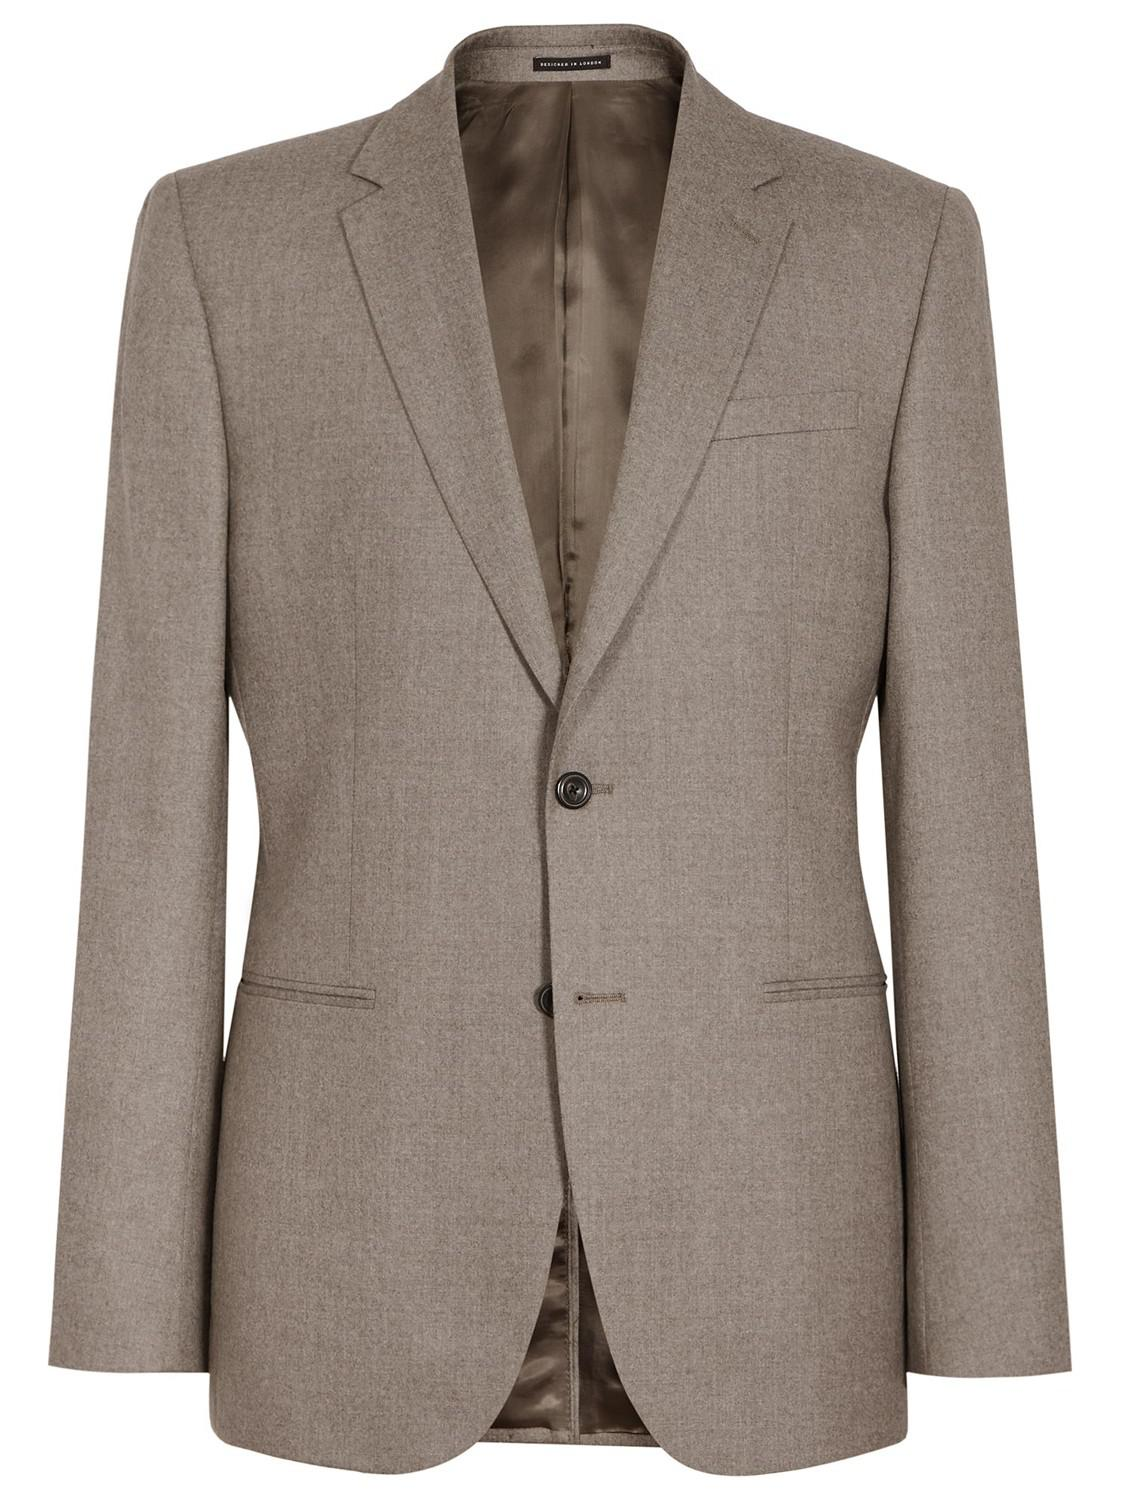 Reiss Wool Tuscan Super 120s Modern Fit Suit Jacket for Men